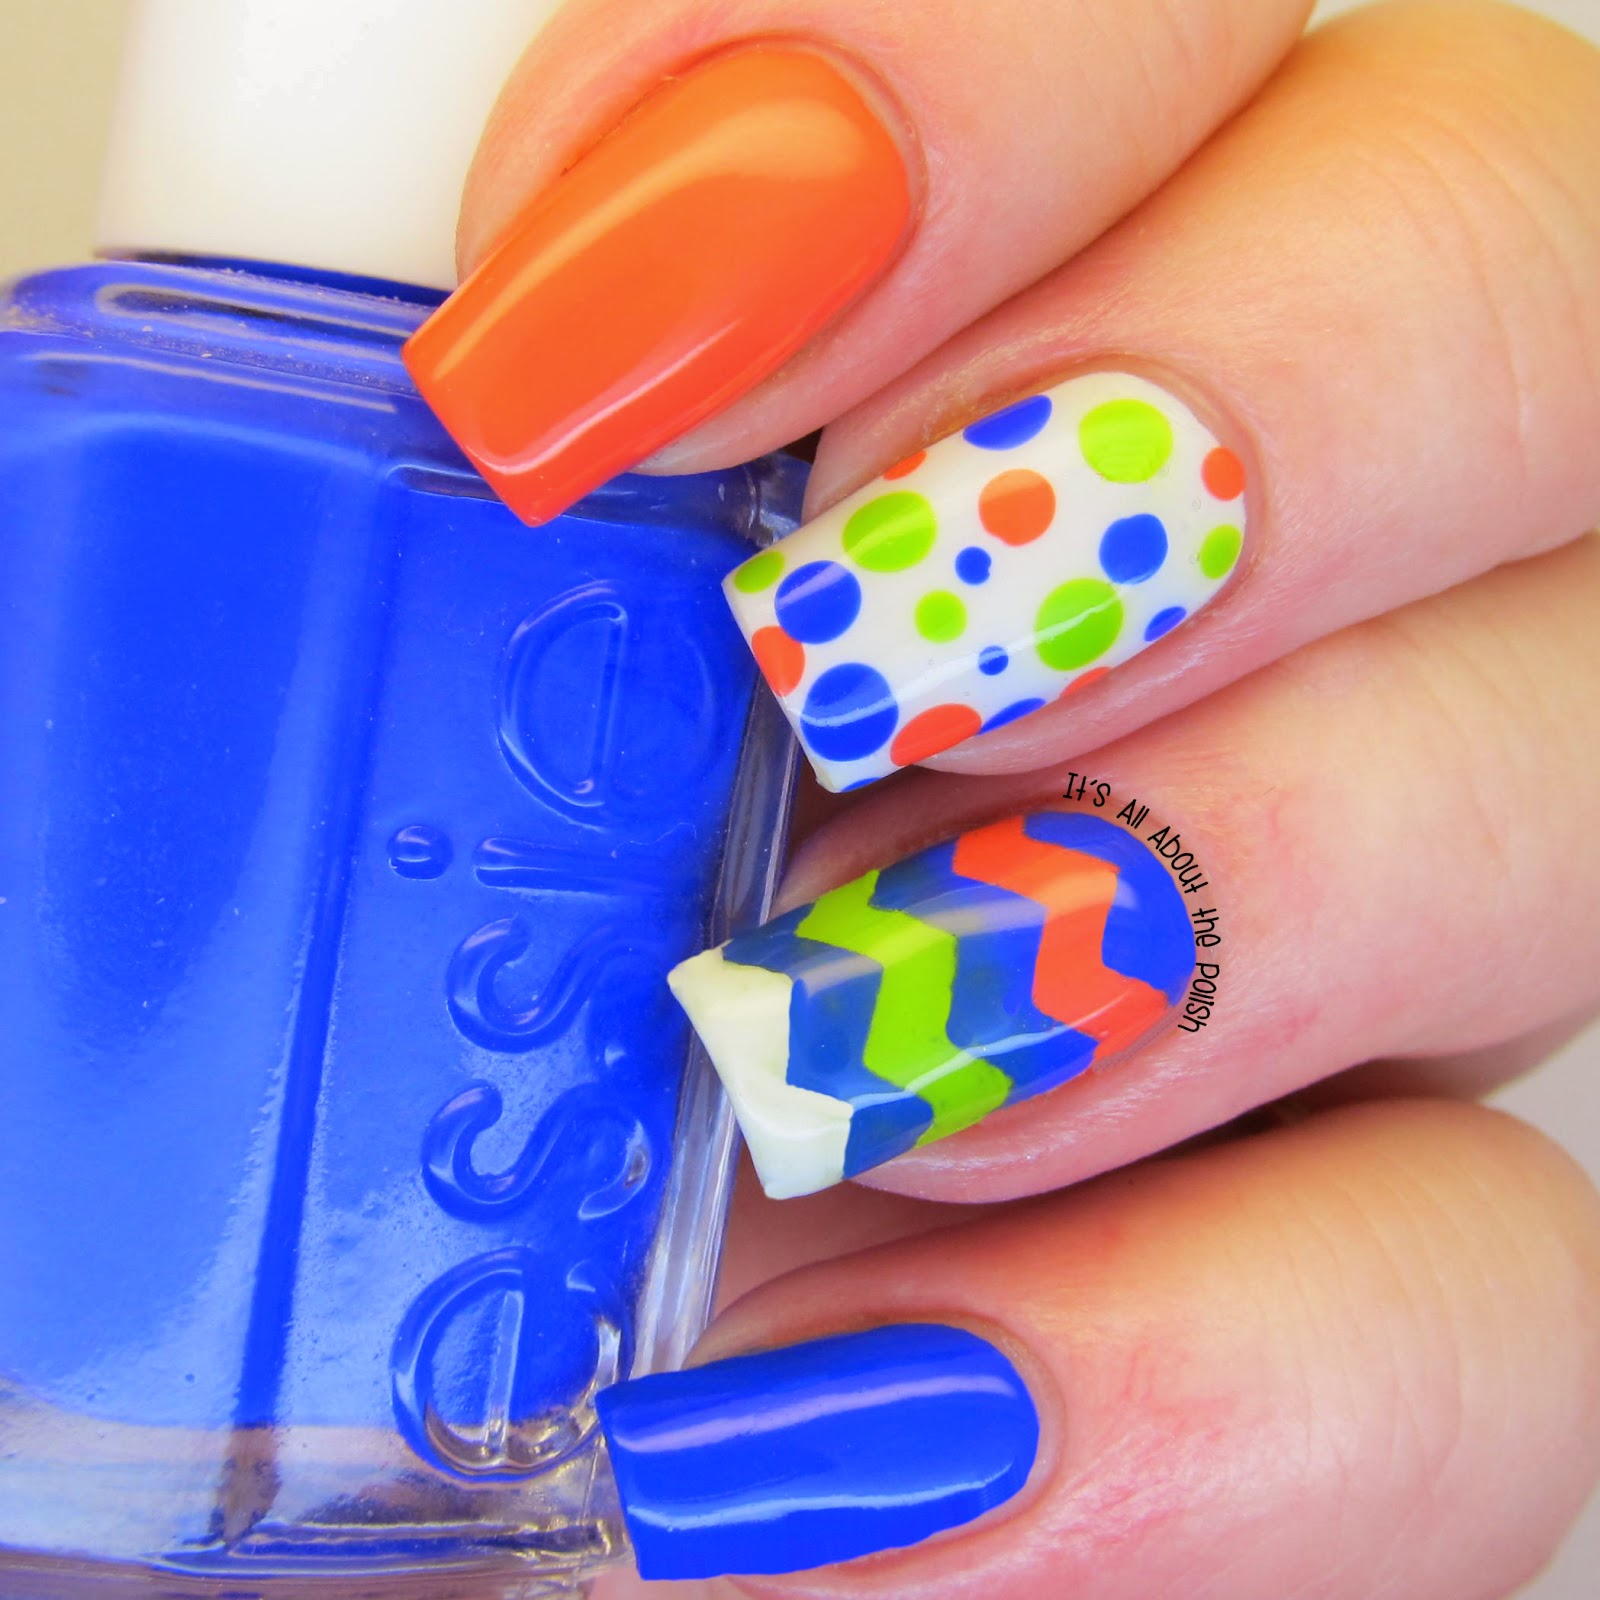 Its All About The Polish Bright And Quirky Nail Design Dots And